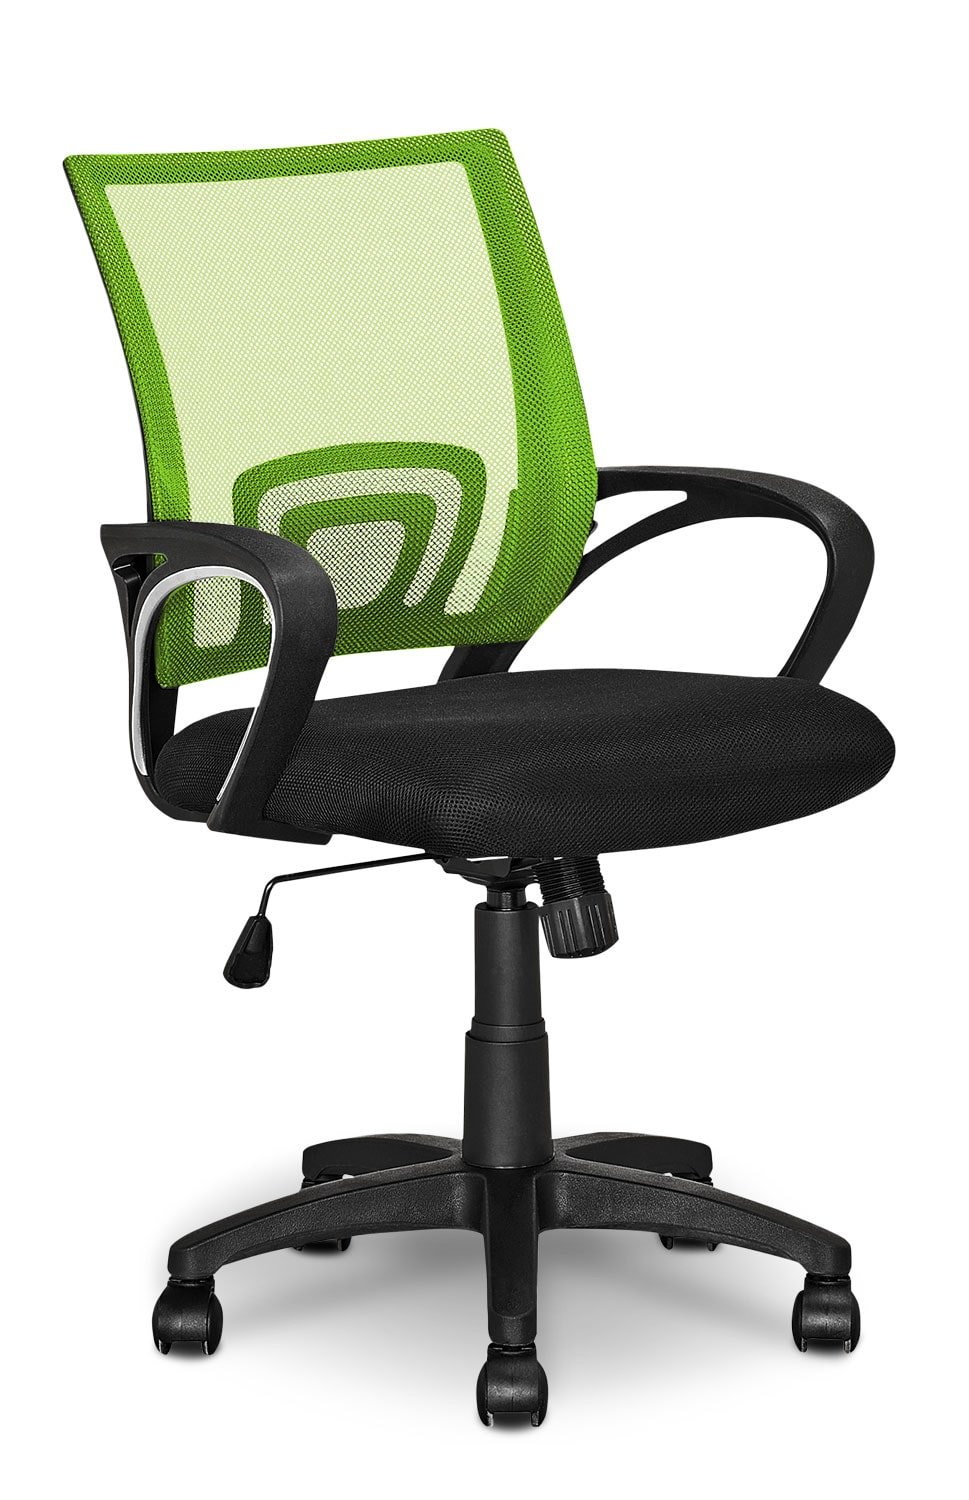 Loft Mesh Office Chair – Light Green